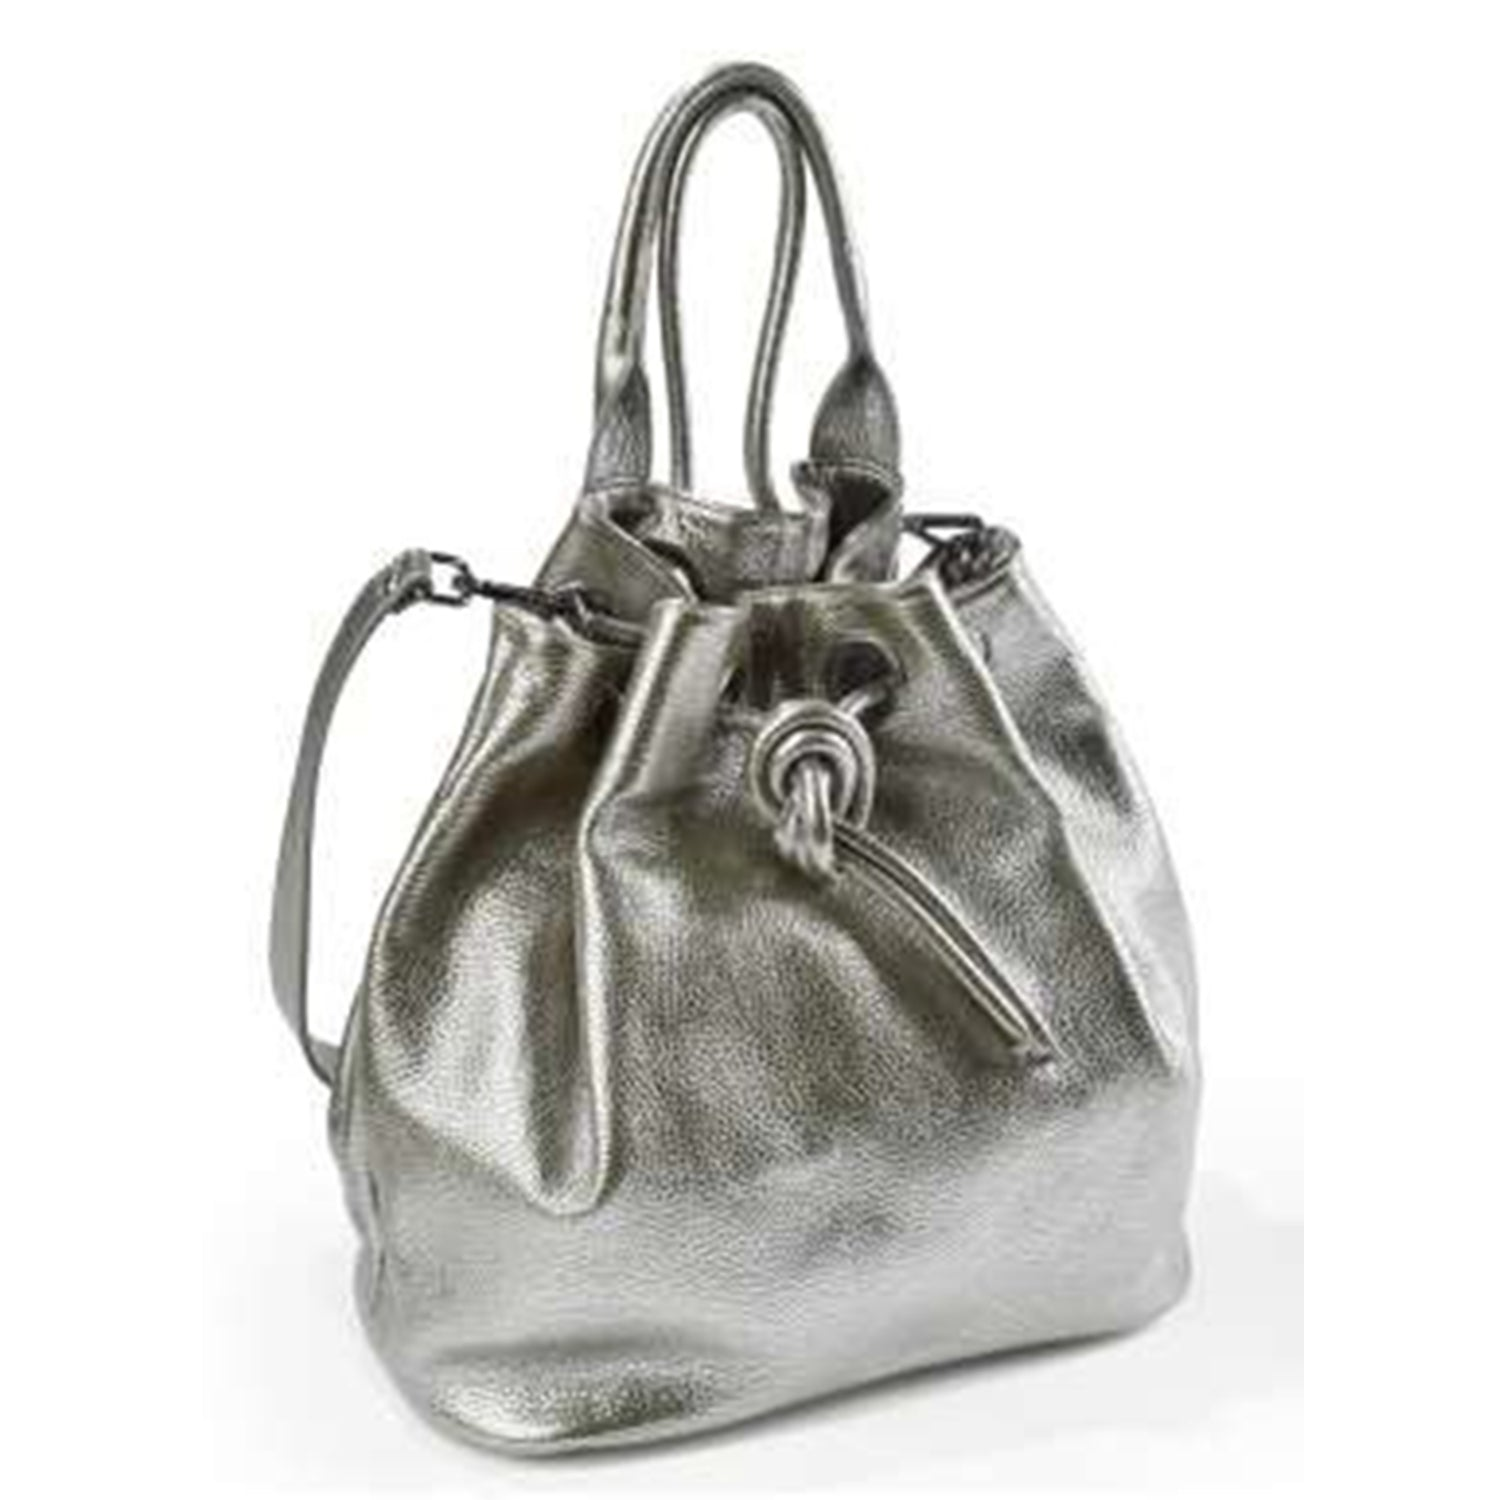 Dollaro Large Leather Knot Bag (B145)